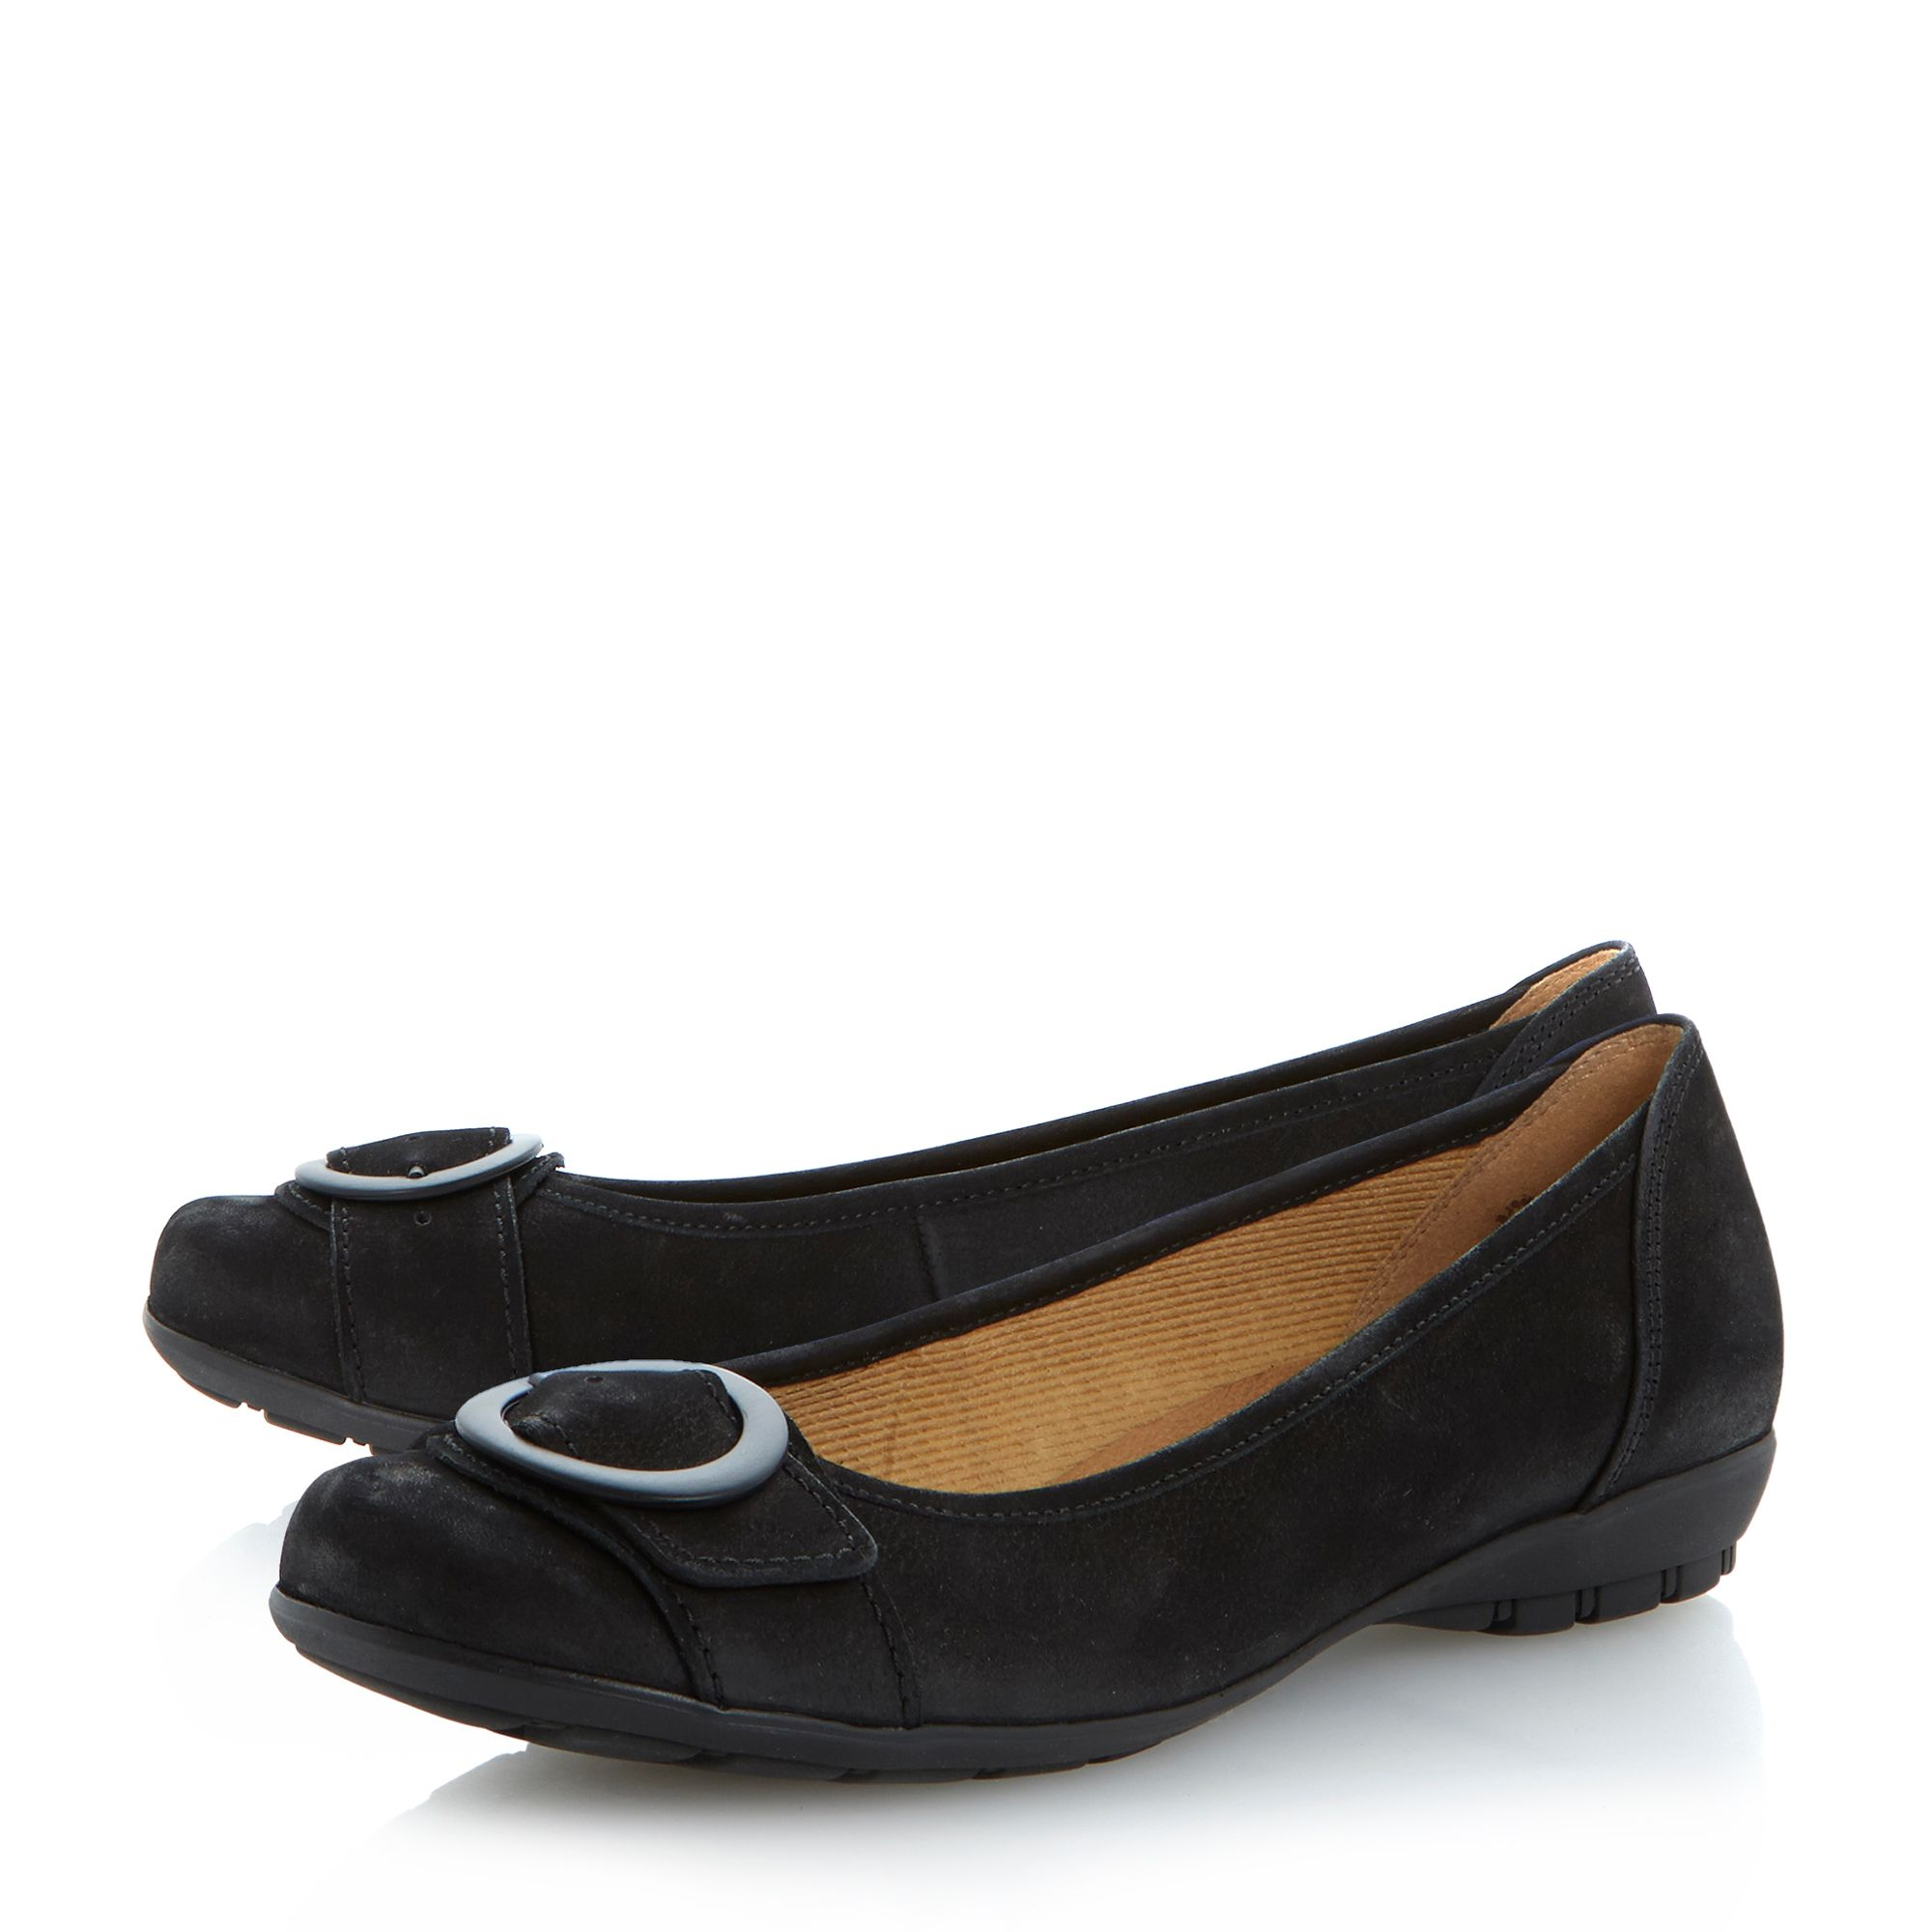 Garda buckle trim flat ballerina pumps